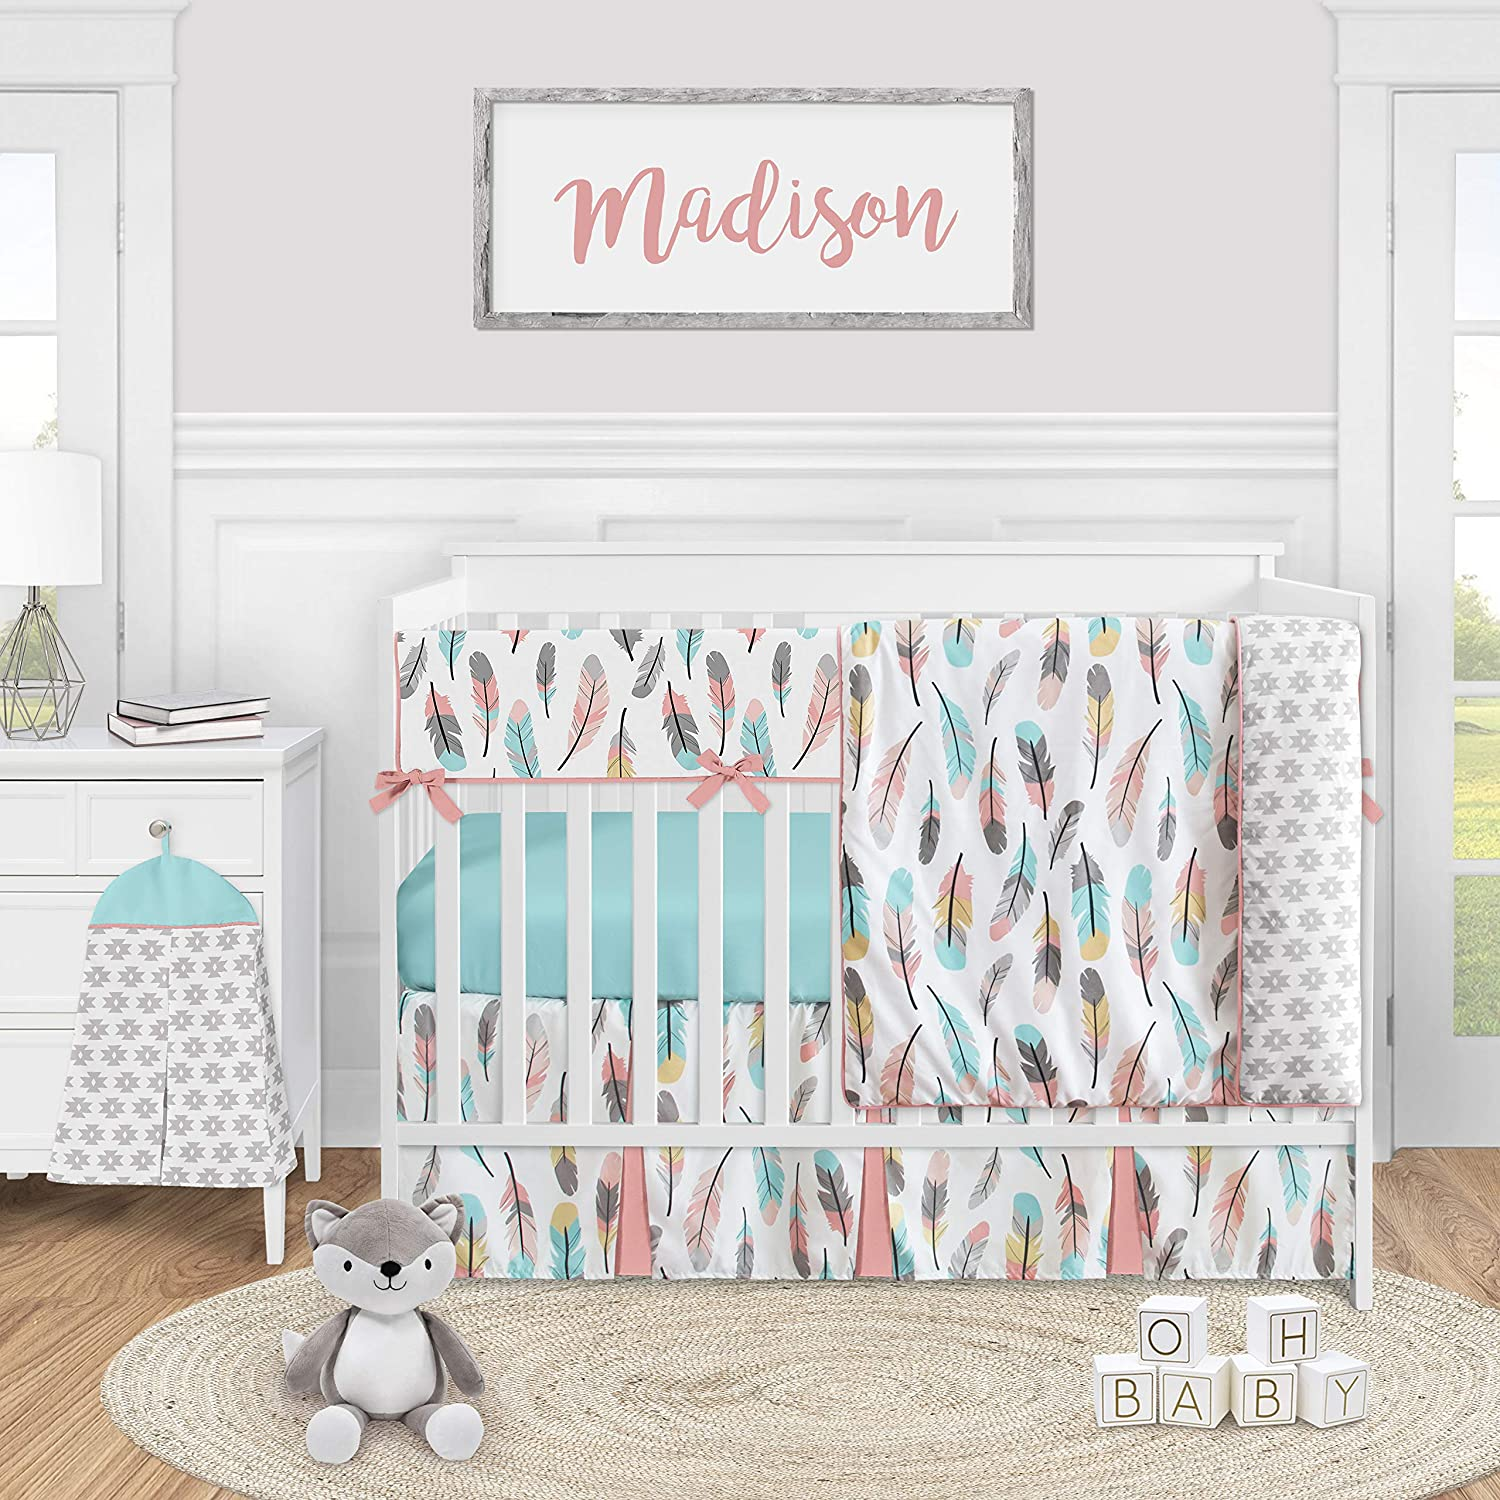 Sweet Jojo Designs Boho Feather Baby Girl Nursery Crib Bedding Set - 5 Pieces - Turquoise Blue Coral and Grey